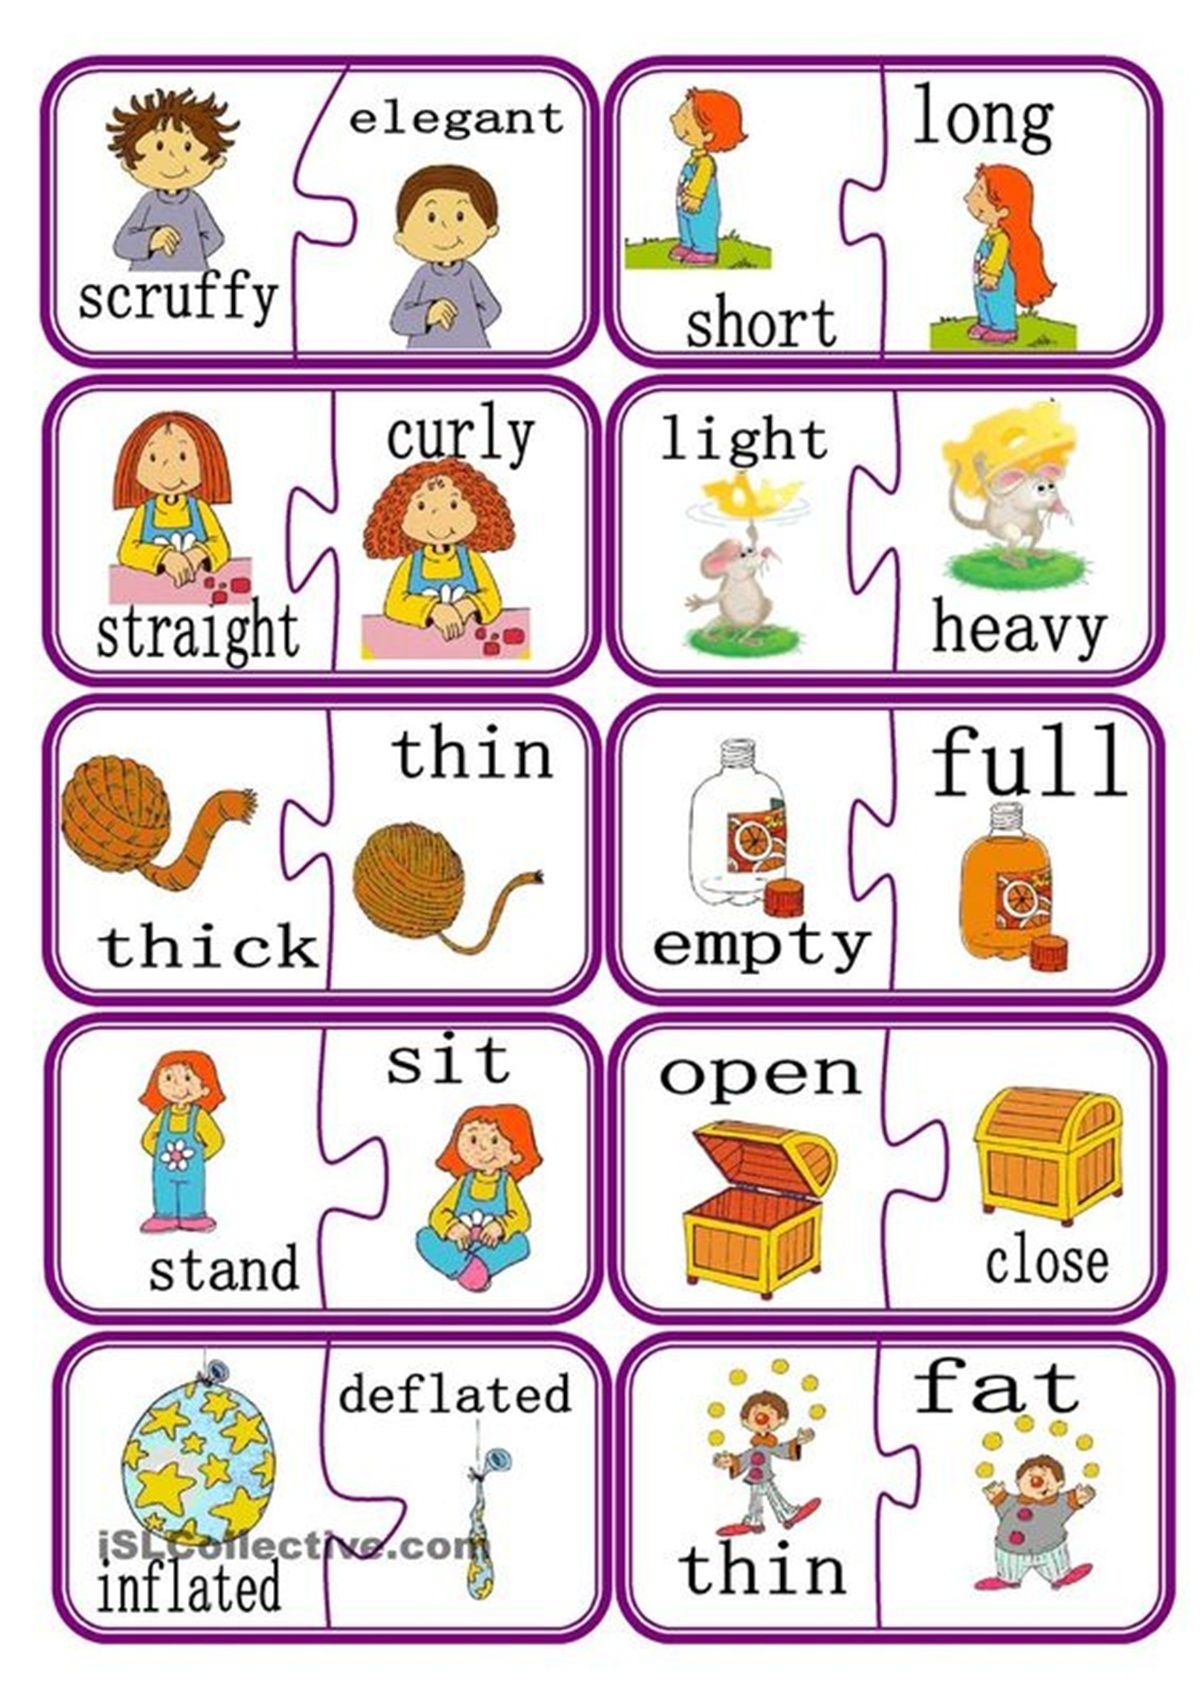 Common Opposite Words In English Learning English For Kids English Lessons For Kids English Classroom [ 1696 x 1200 Pixel ]